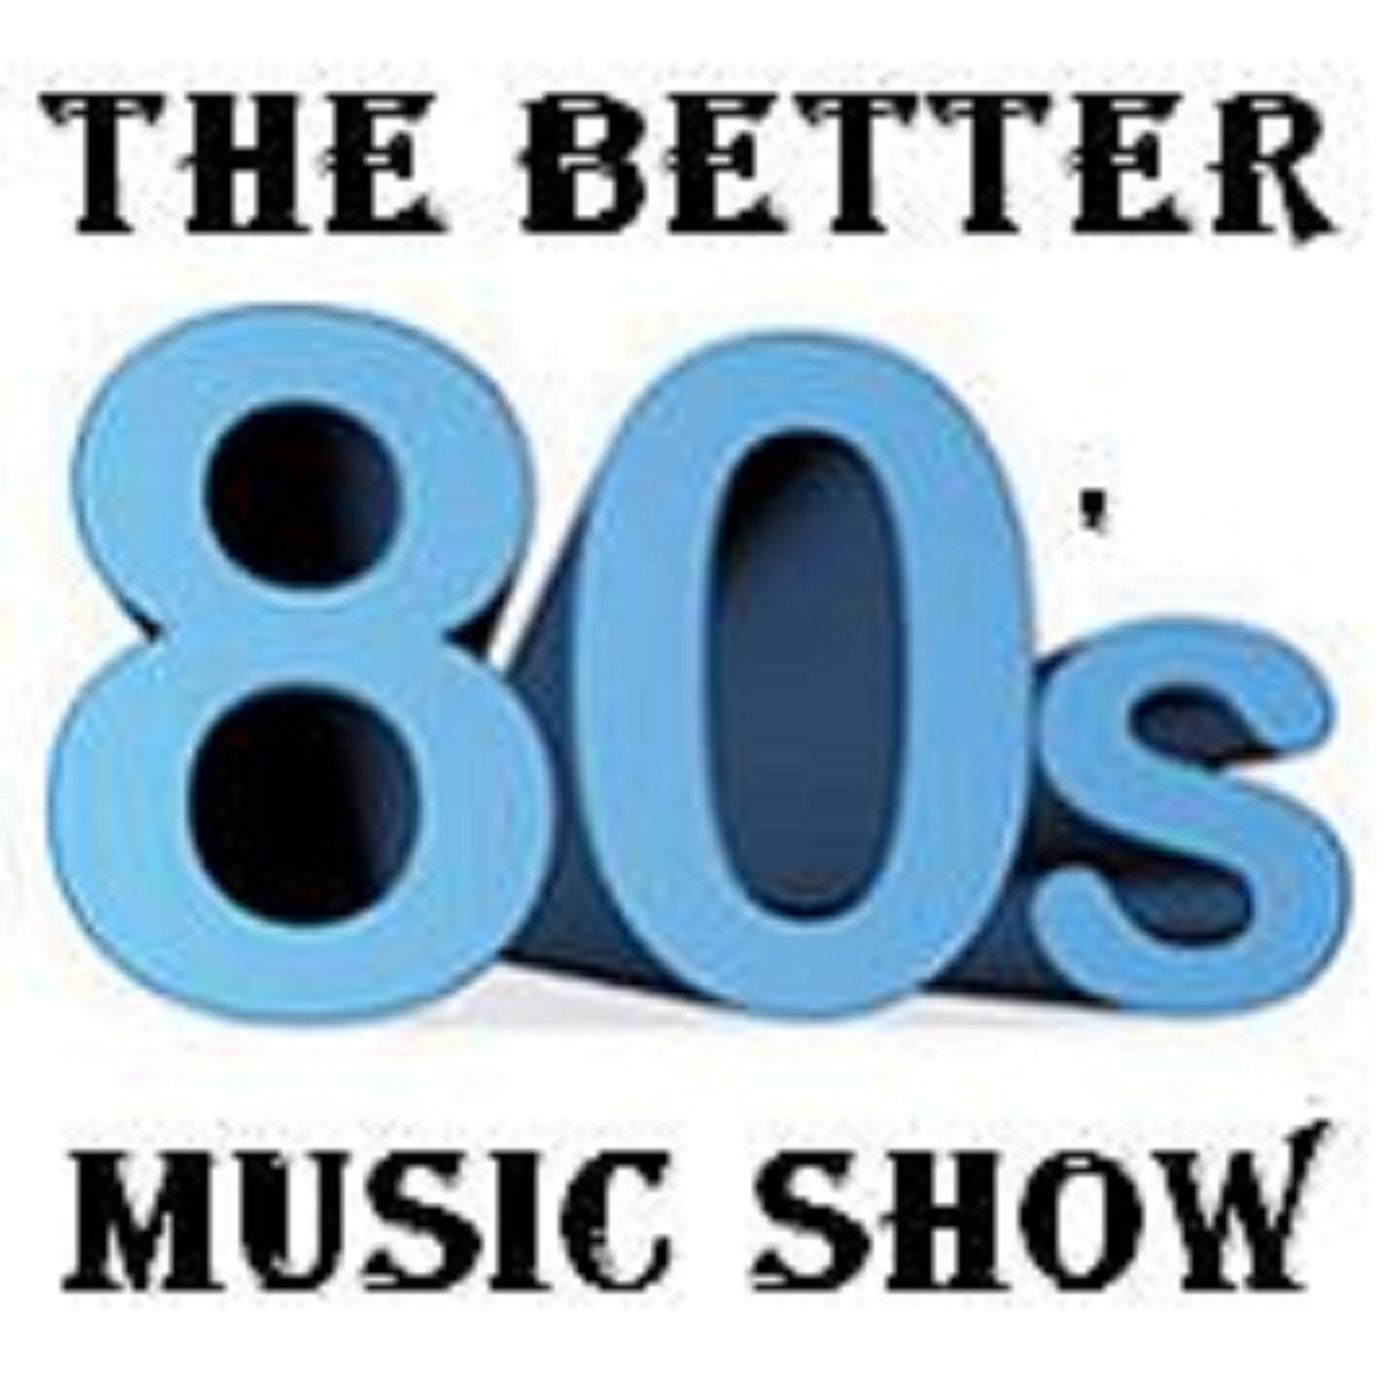 The Better 80's Music Show